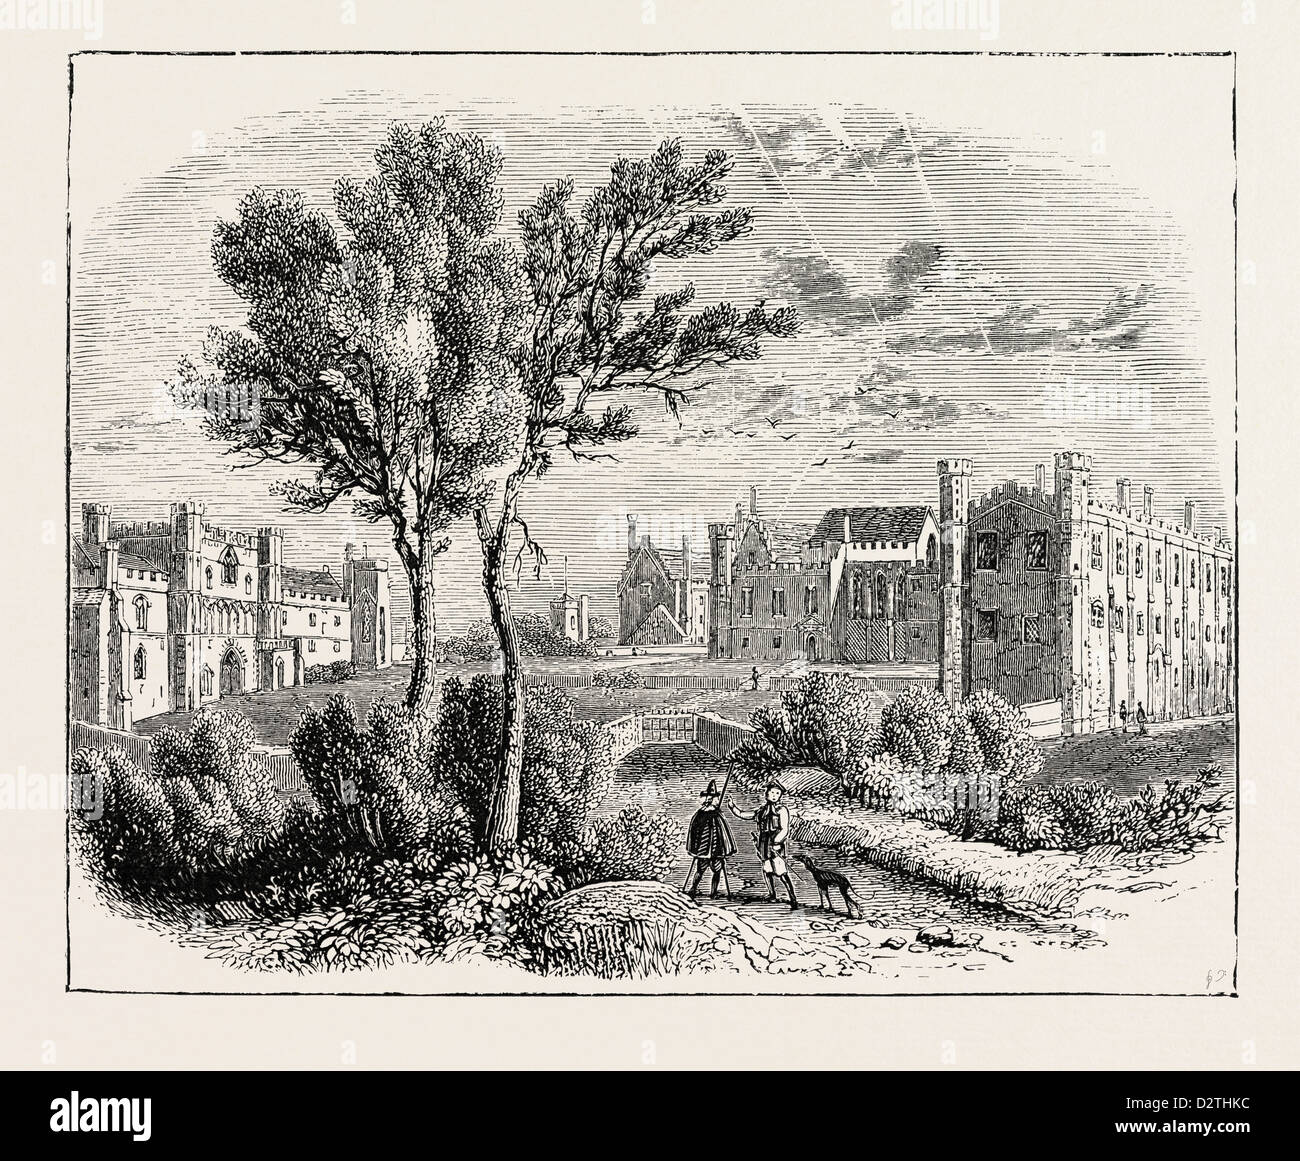 BATTLE ABBEY IN THE 17TH CENTURY. - Stock Image